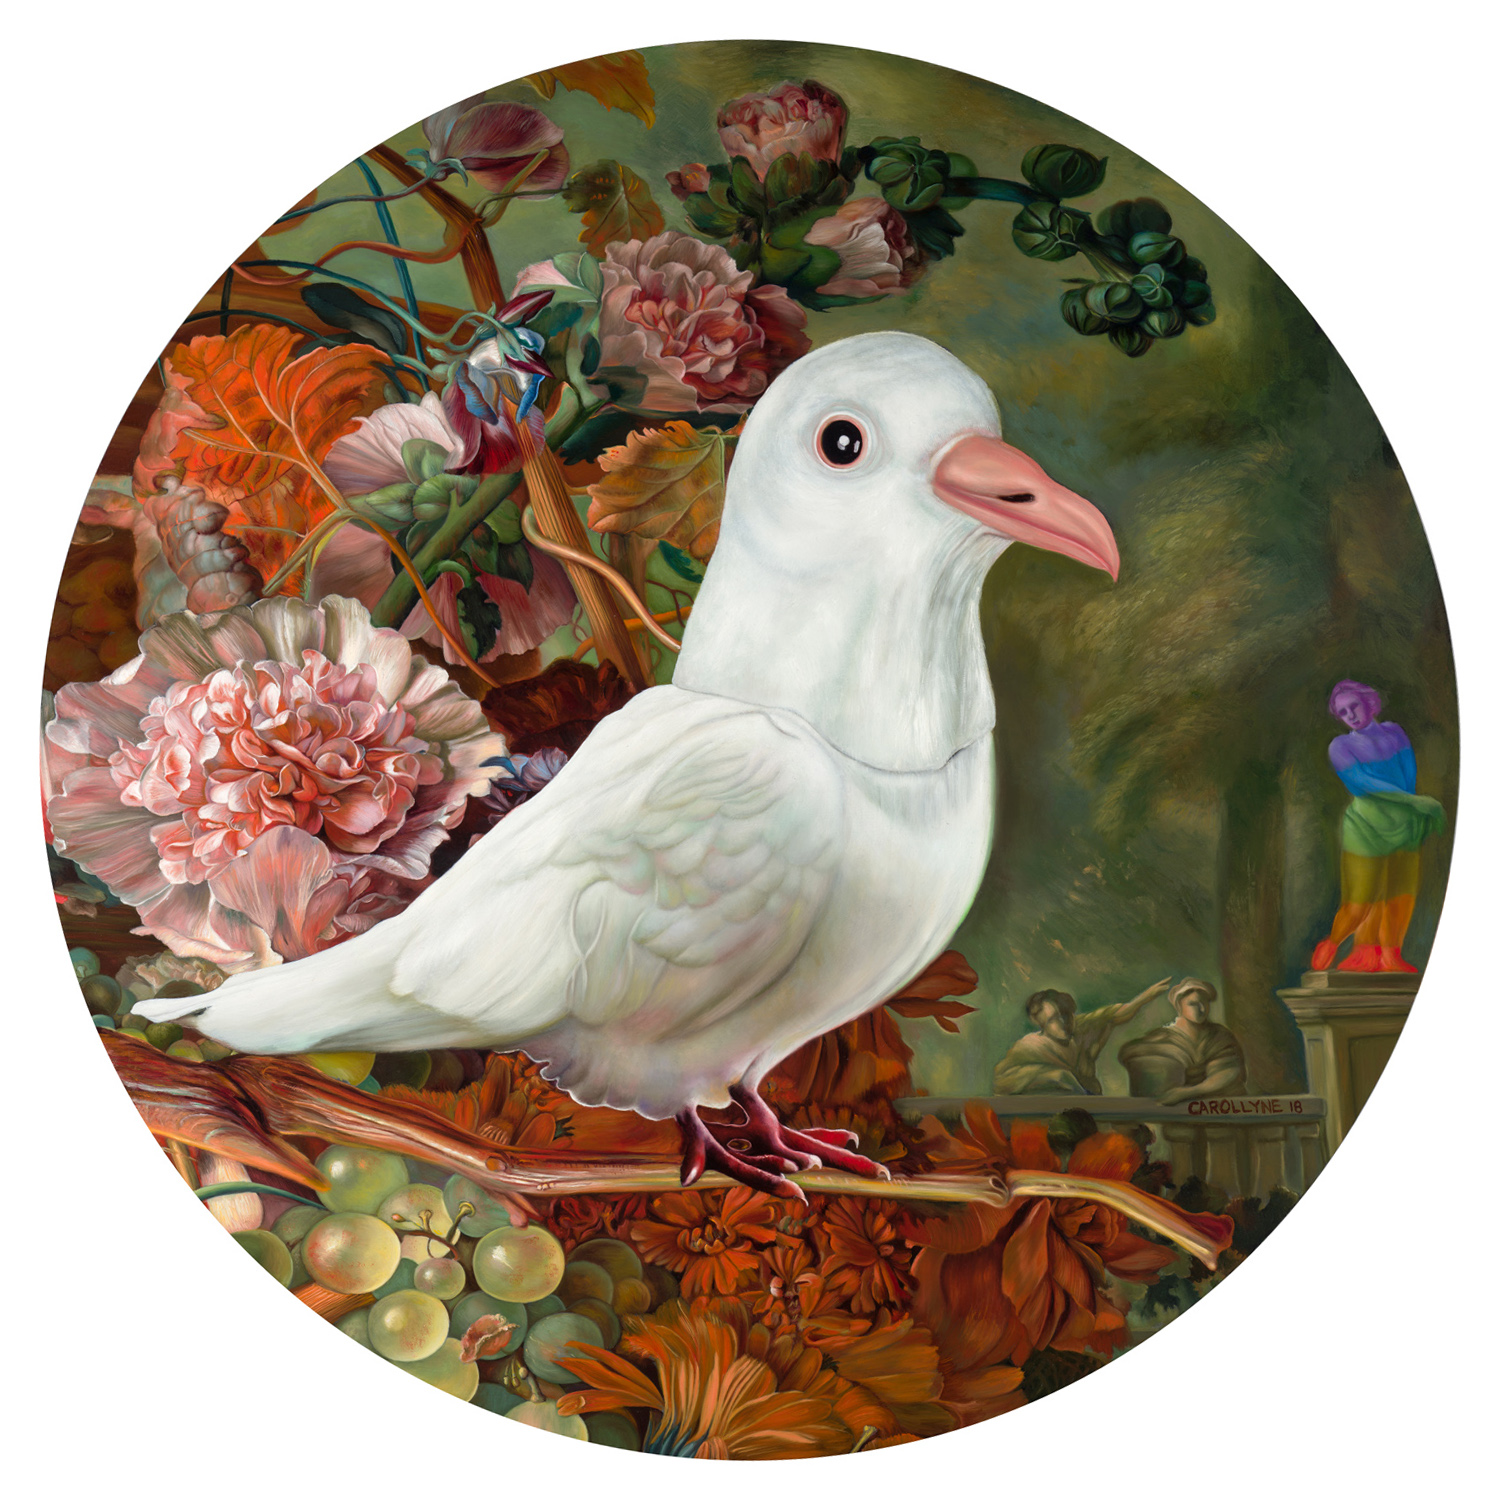 "Holy Spirit Wears a Dove Mask II (Commission) 36"" diameter, oil on panel, 2018"